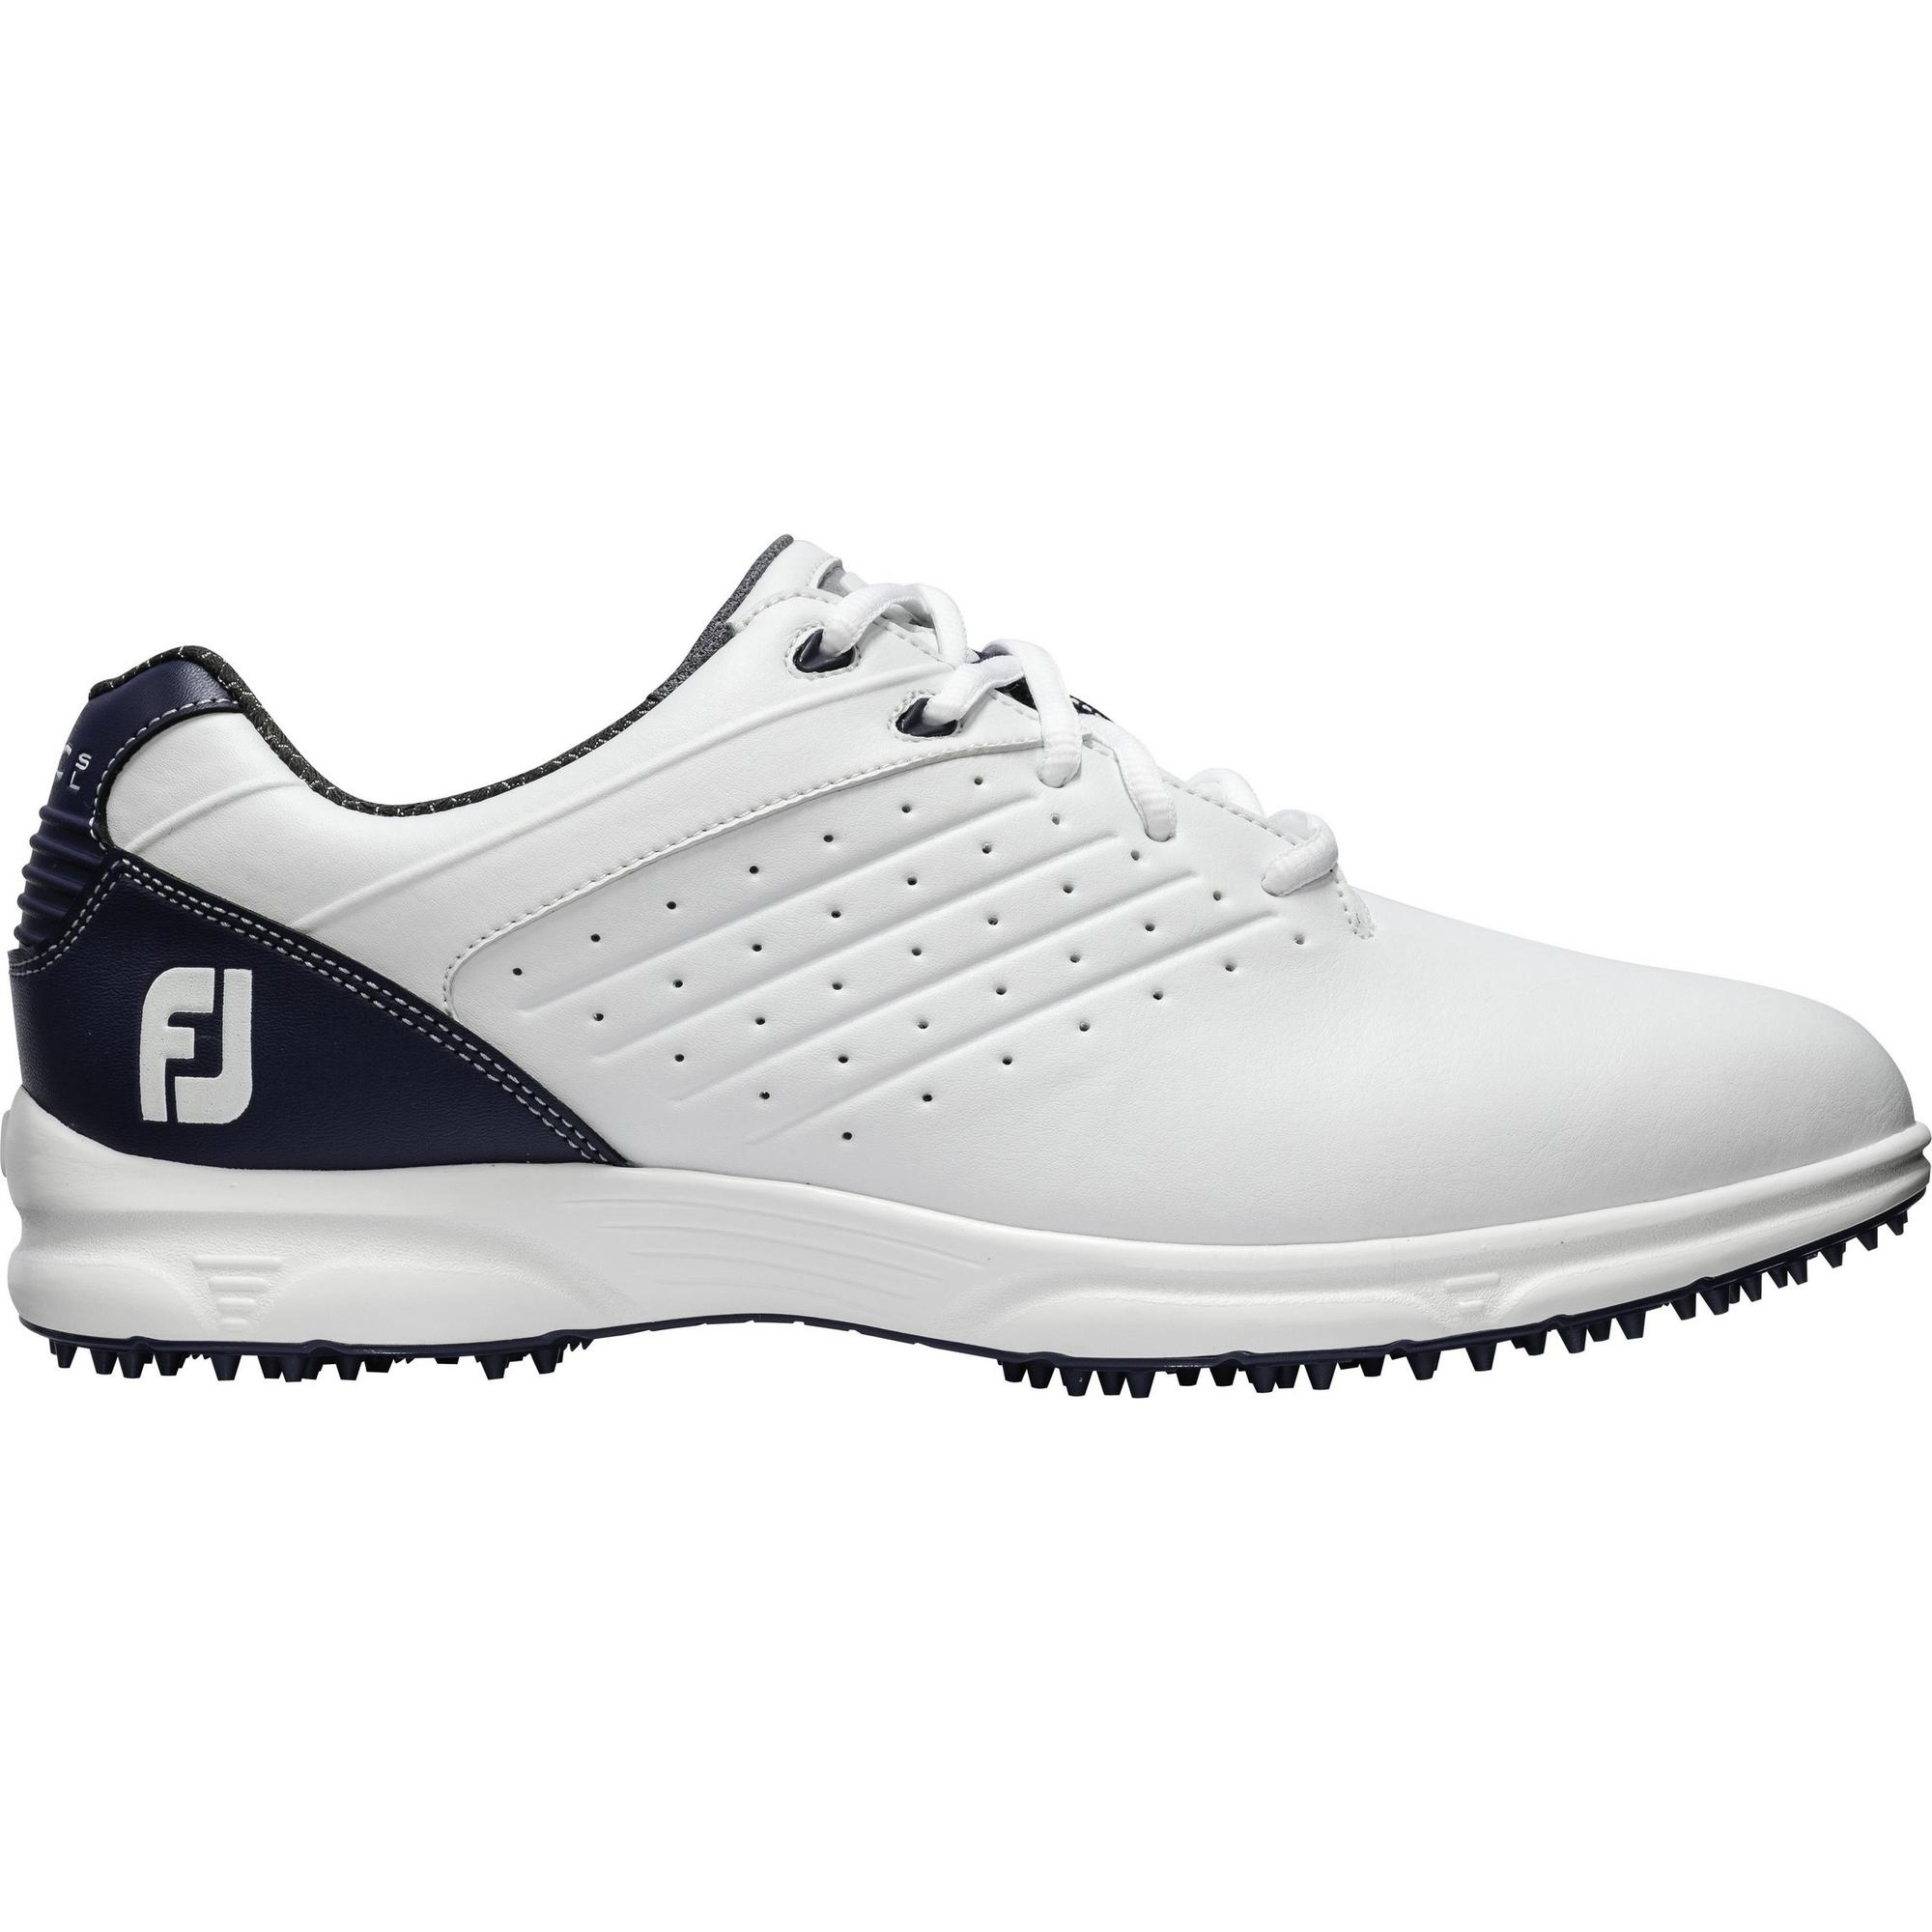 Men's Arc Spikeless Golf Shoe - WHT/NVY